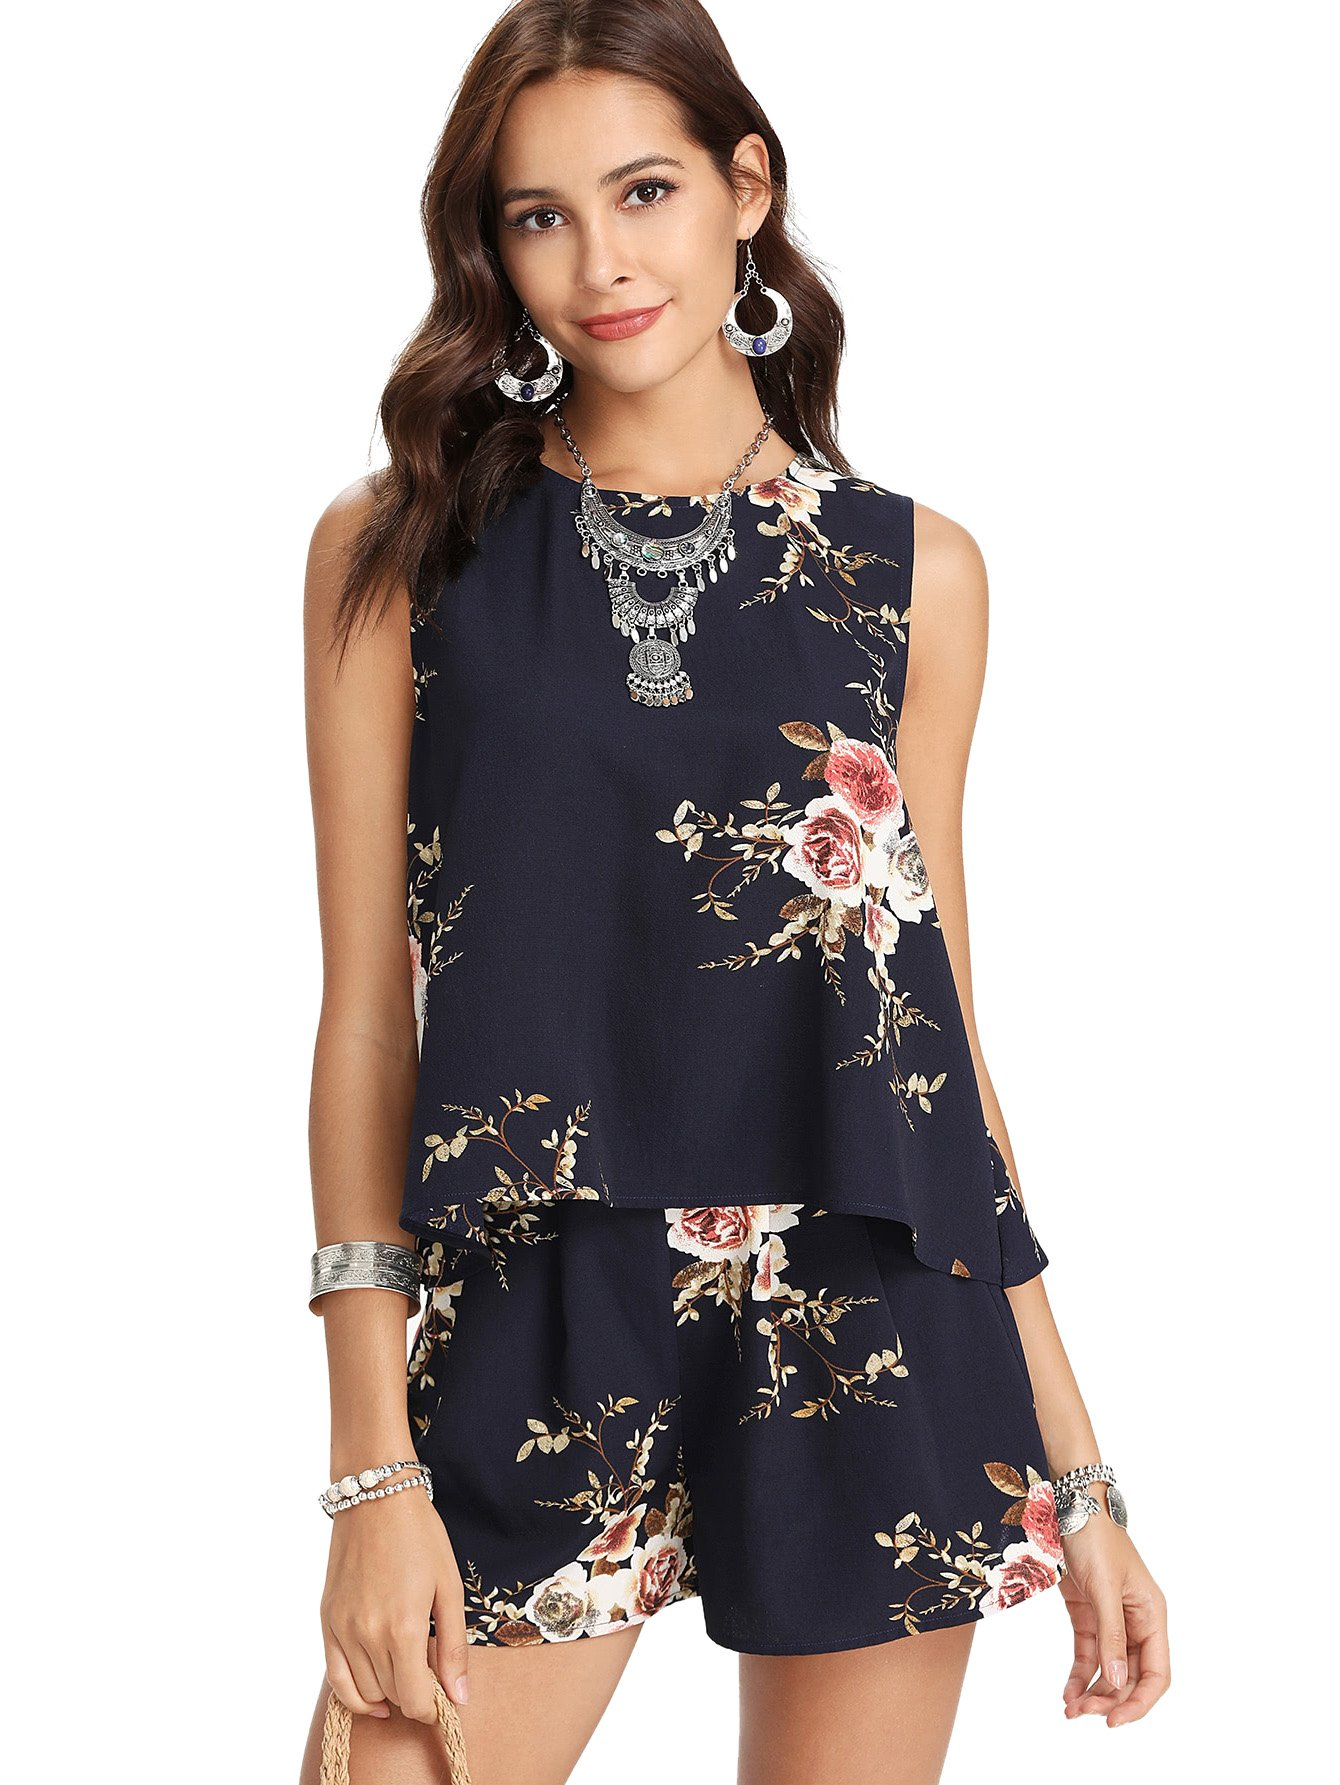 SweatyRocks Women's Floral Print Overlap Back Top and Shorts Set 2 Piece Outfit Navy L